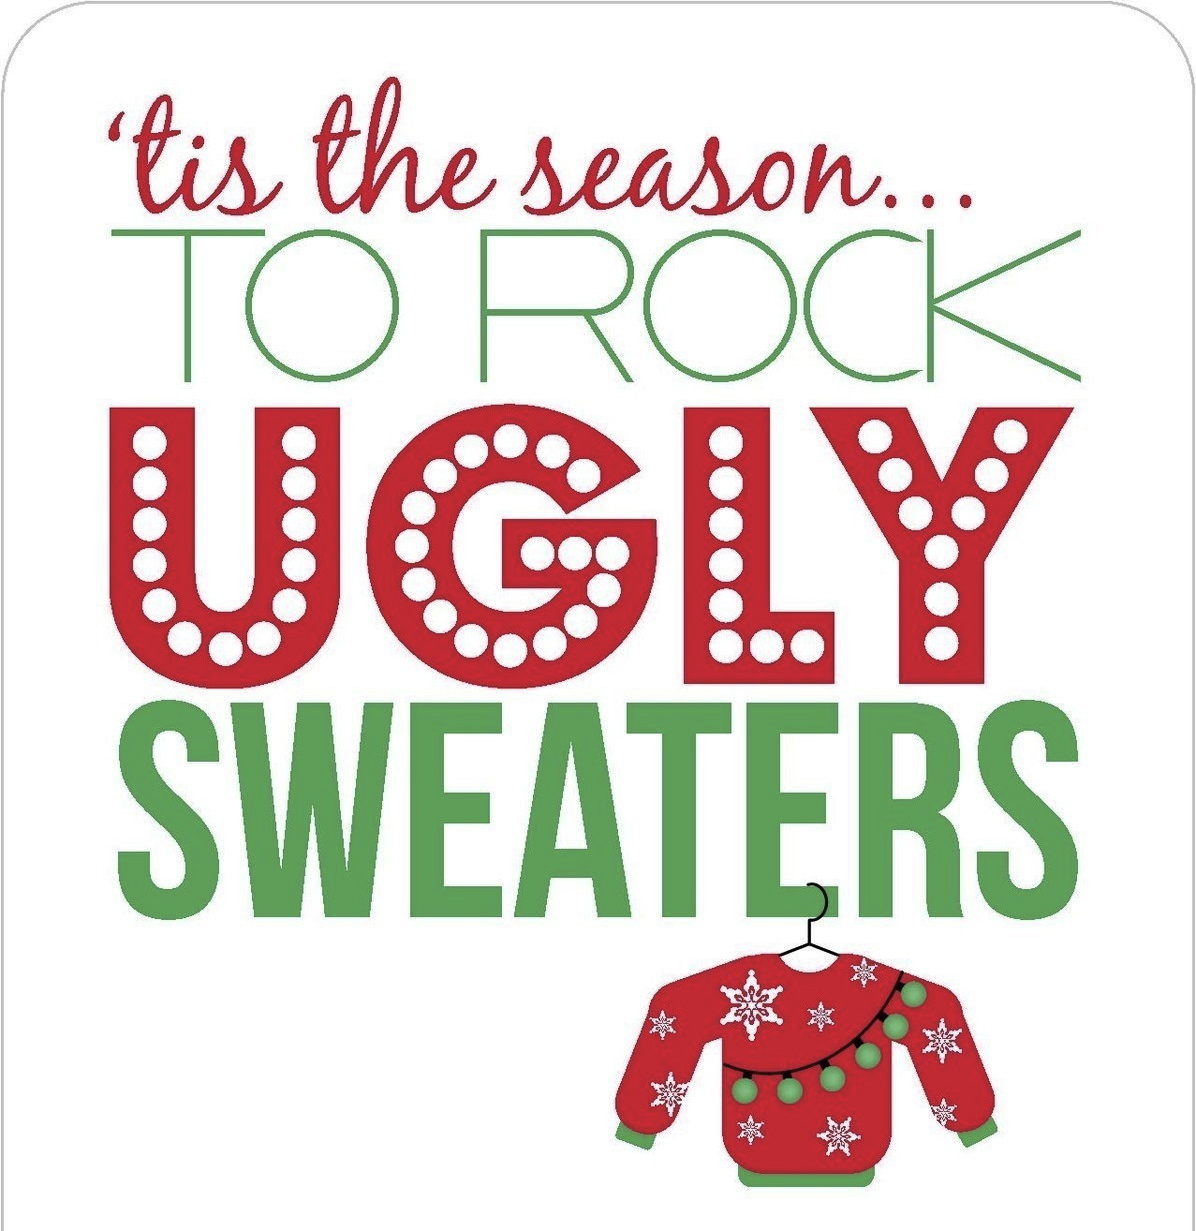 Ugly Christmas Sweater Party Funny Event Ideas and Inspir...